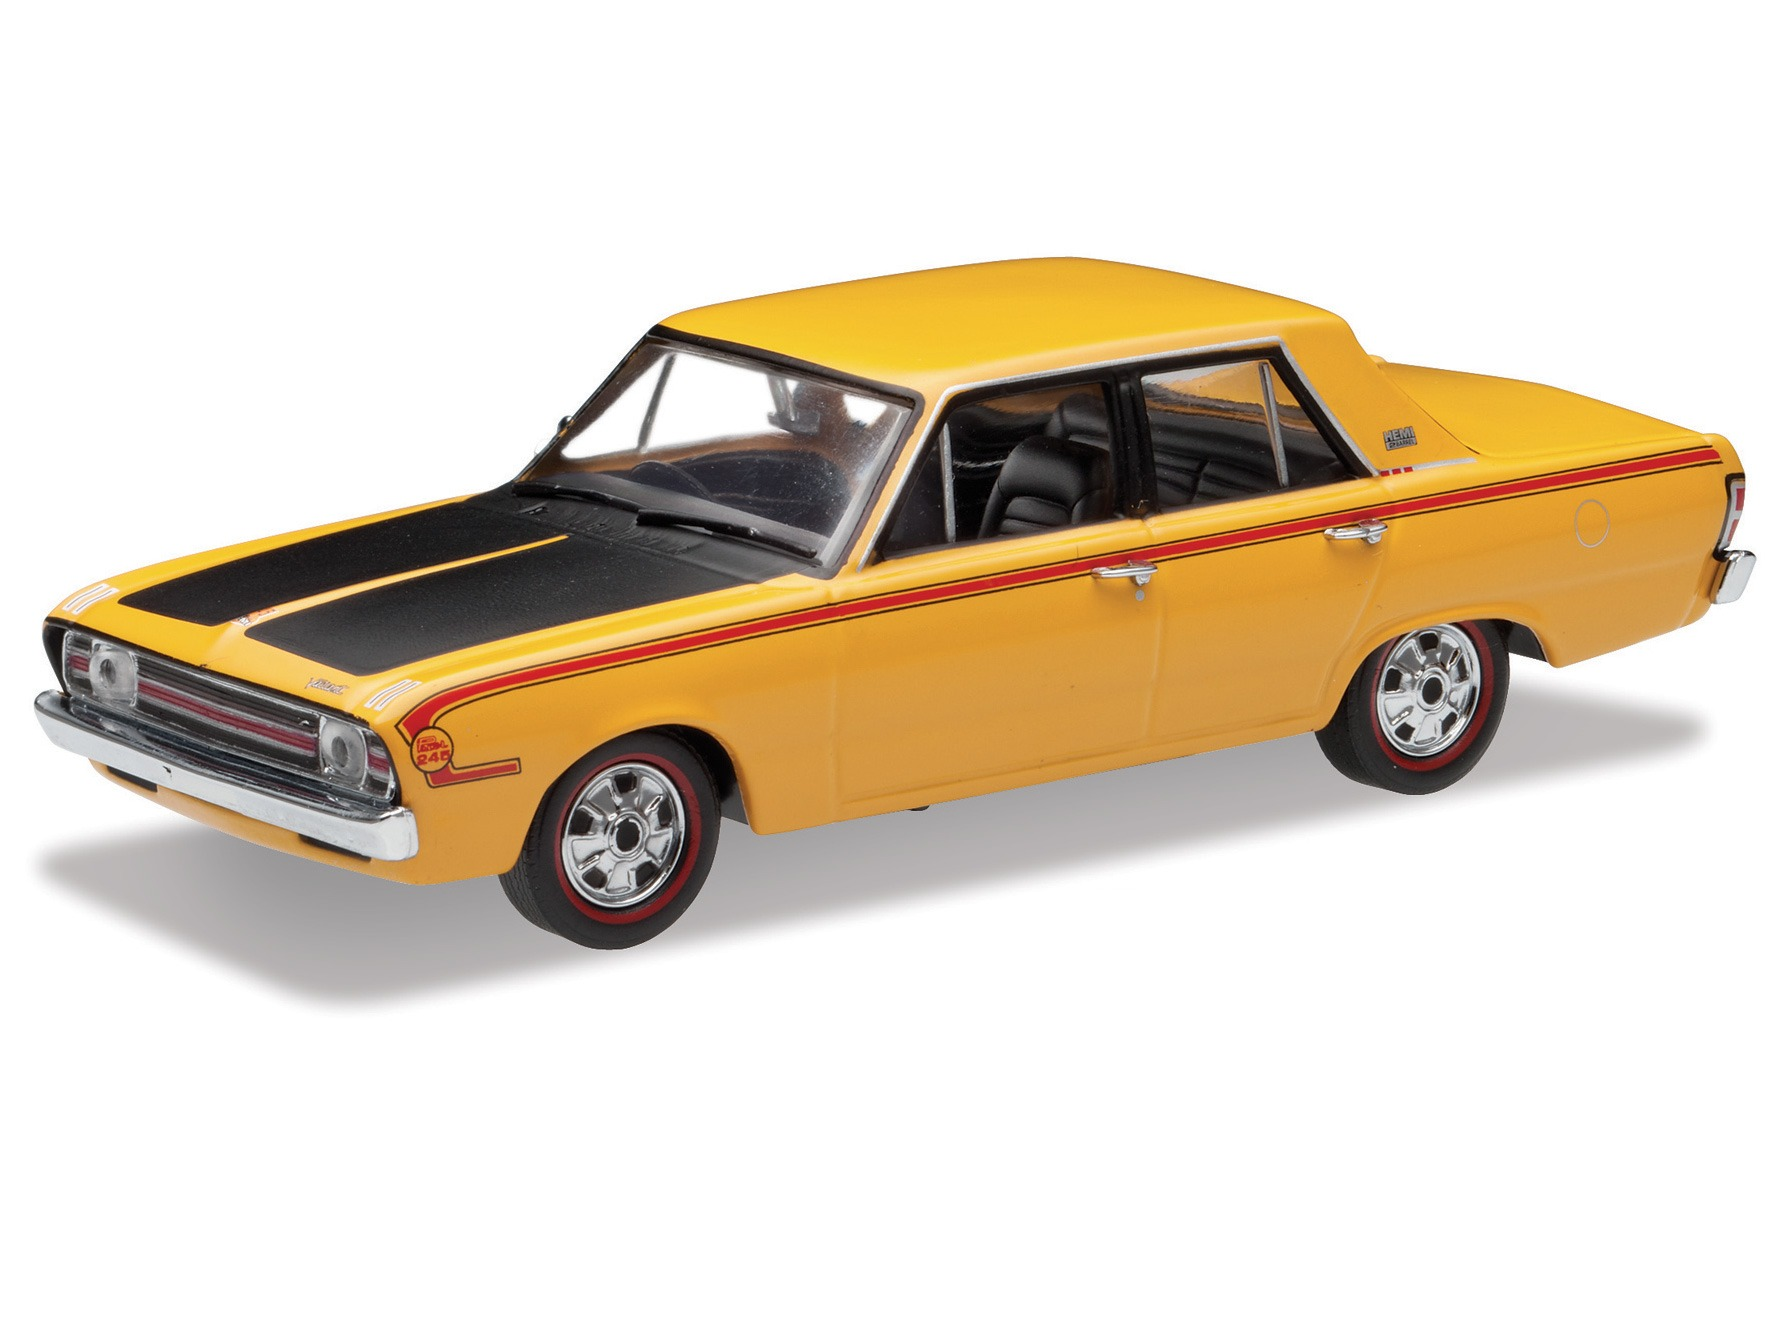 1970 Chrysler Valiant VG Pacer – Hot Mustard